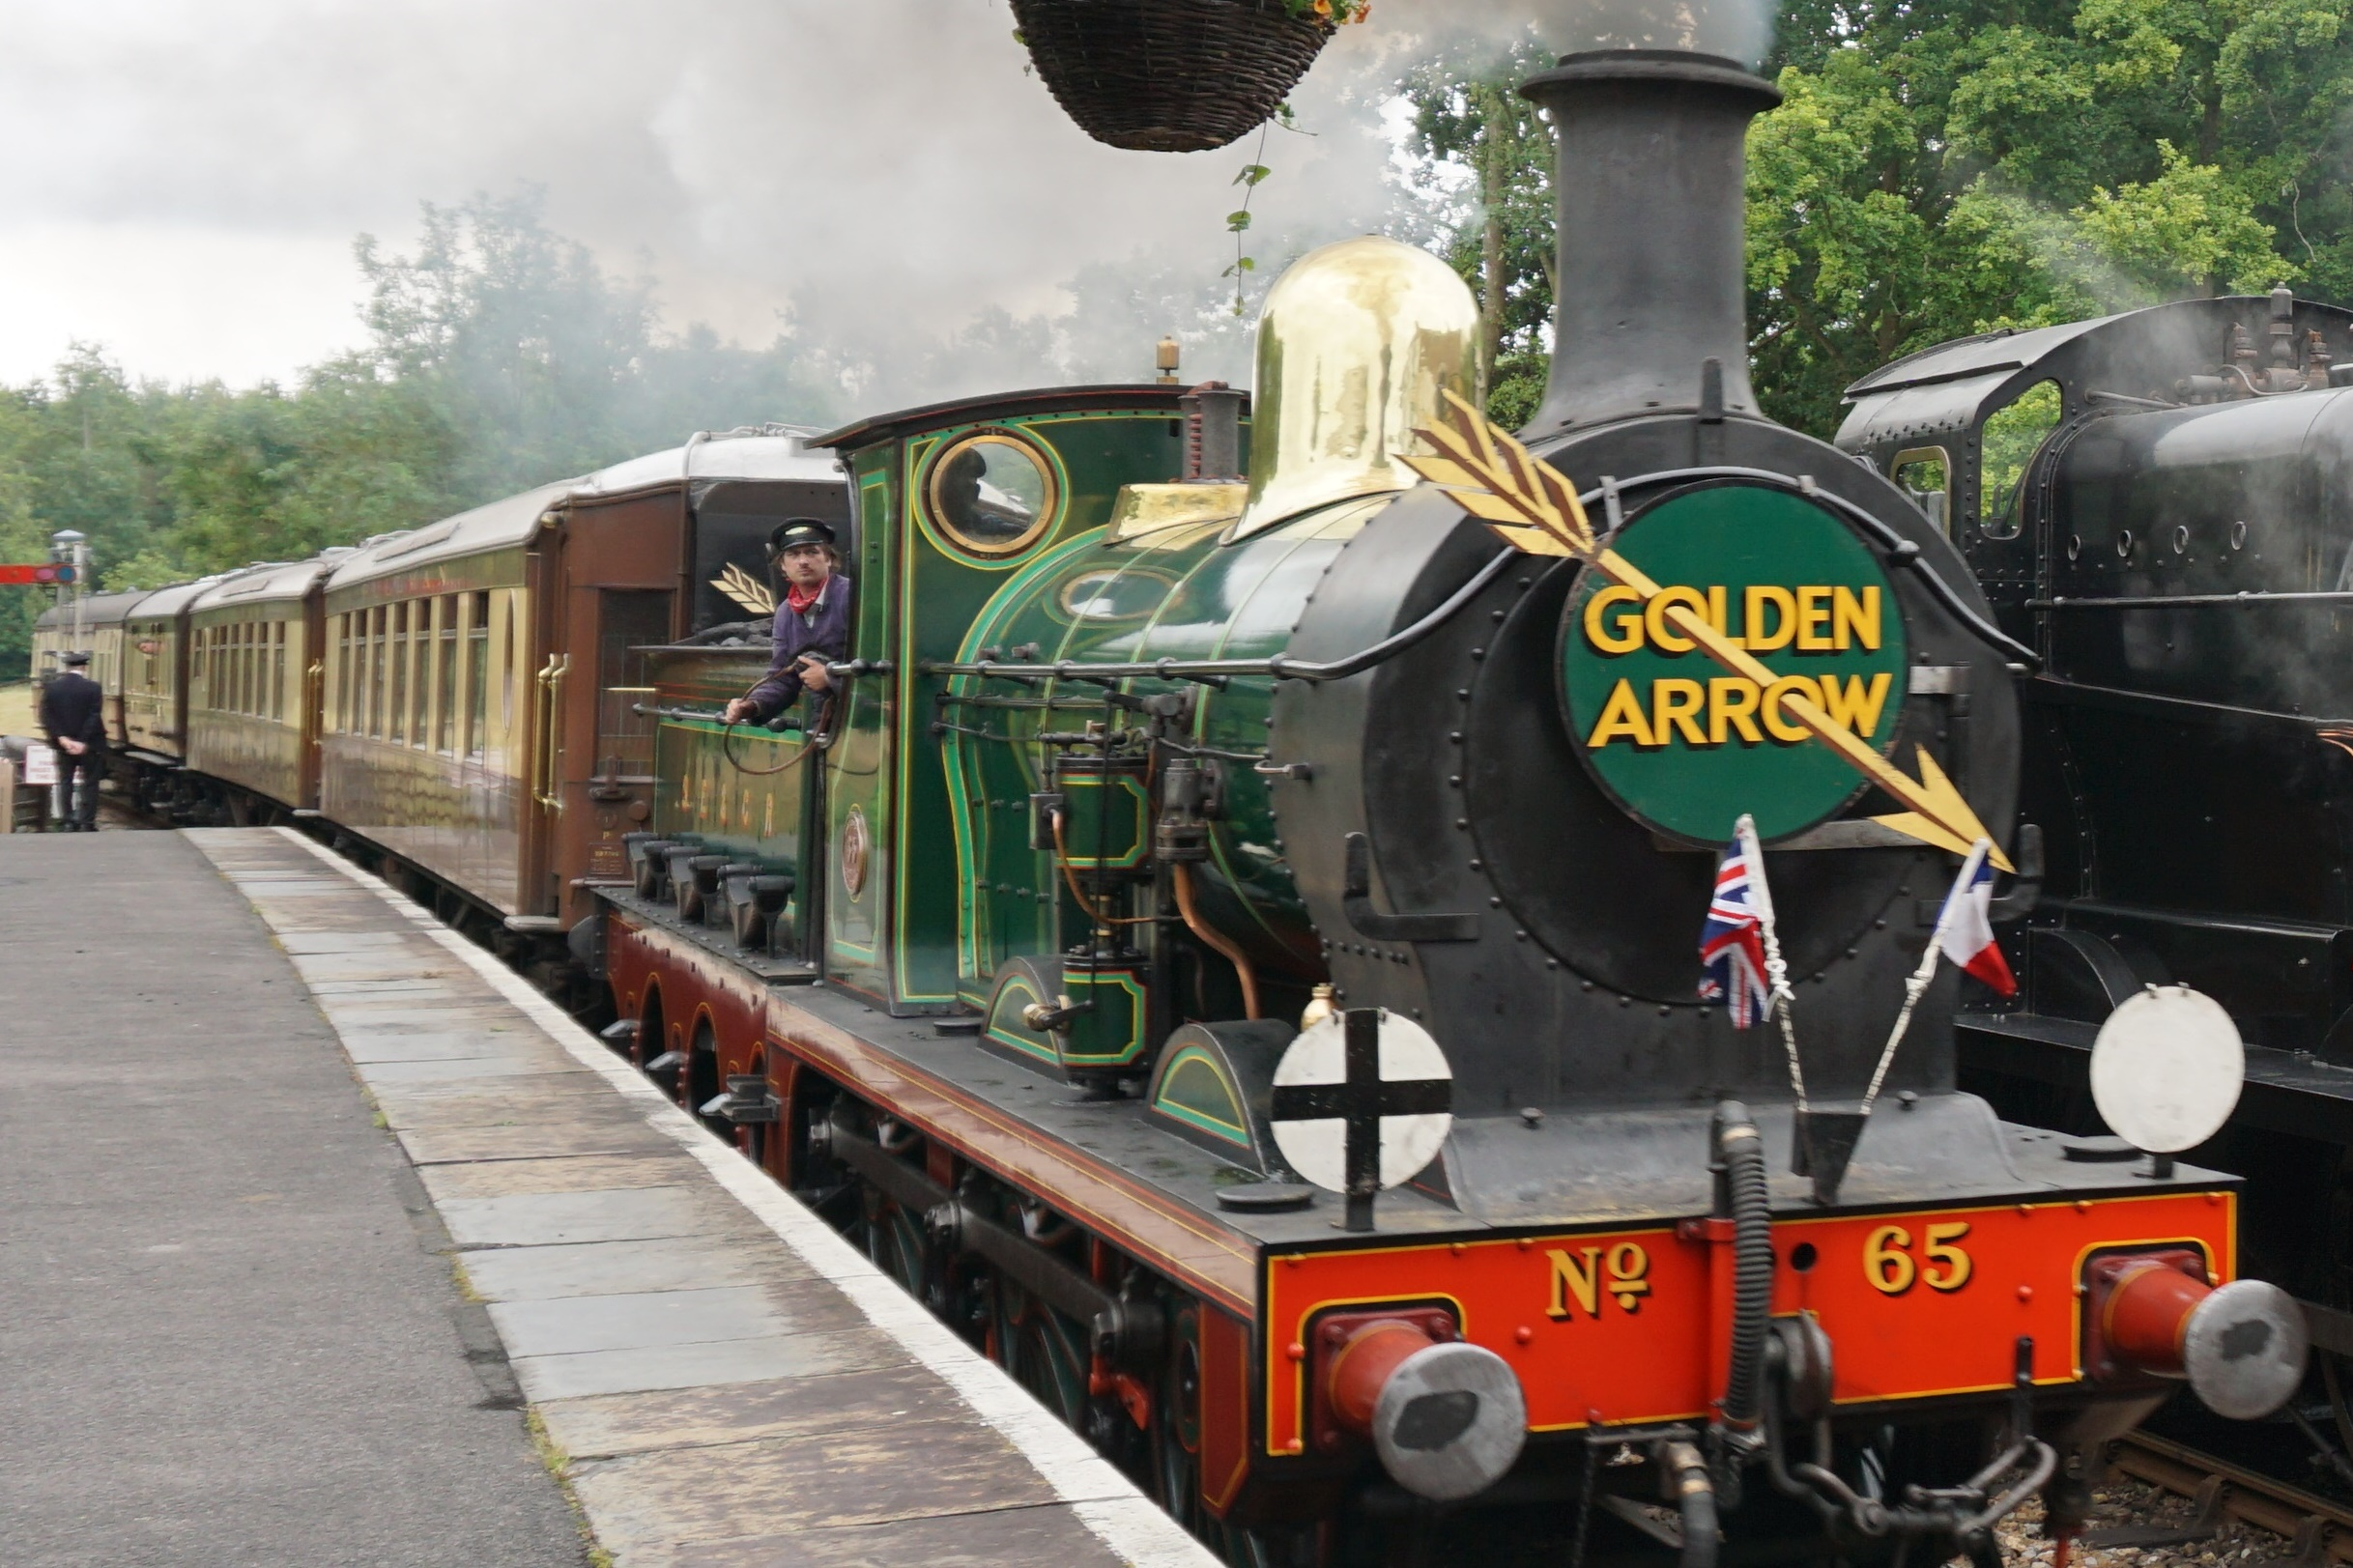 South Eastern Railway Stirling 0-6-0 No.65 - Golden Arrow Service approaching Kingscote Station